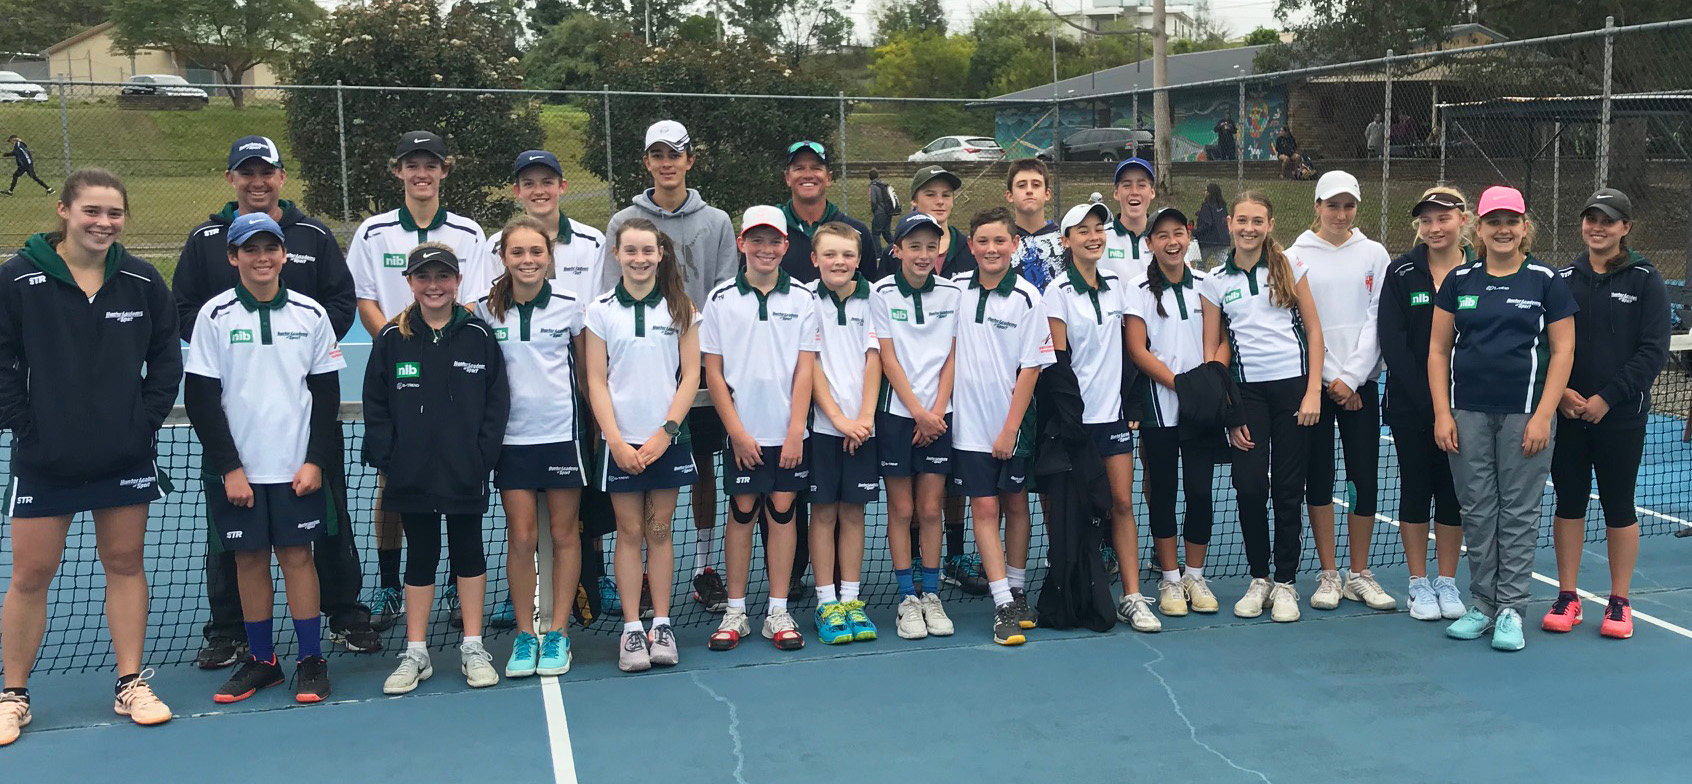 The 2018 Hunter Academy of Sport (HAS) tennis squad were lucky enough to be visited by some of greats of their sport earlier this month, attending the Northumberland Region Talent Camp in Gosford.